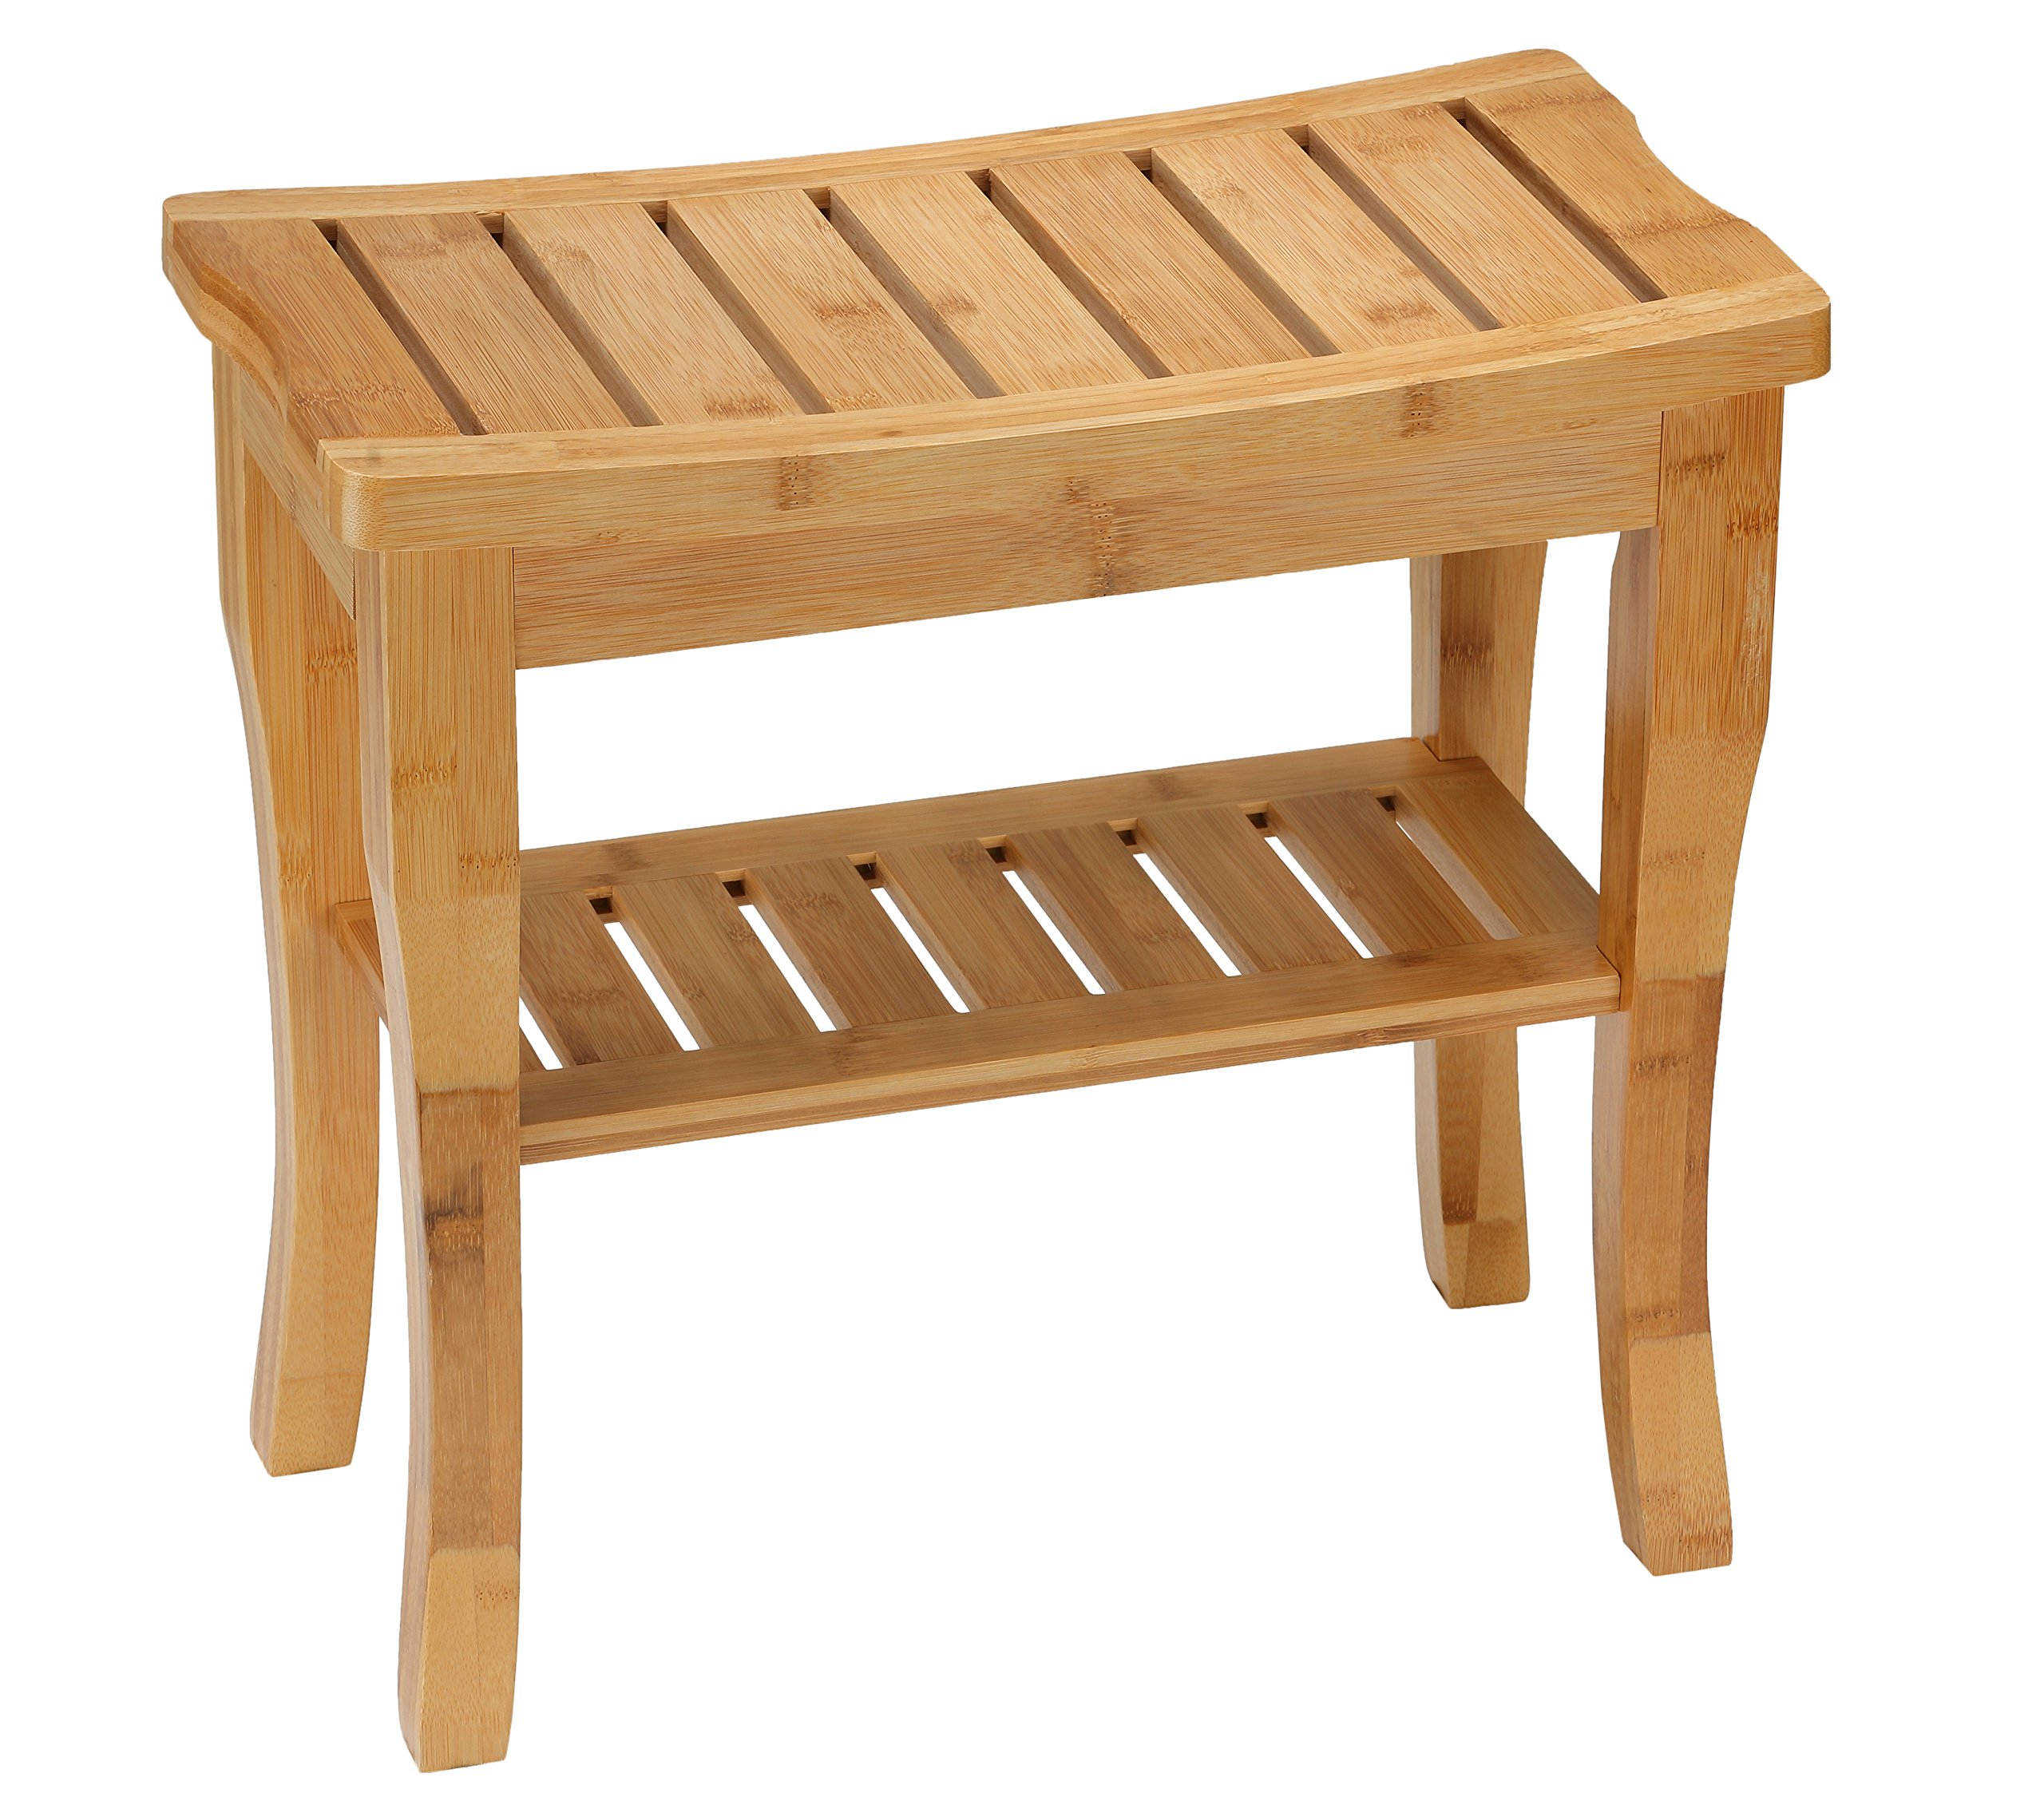 Cortesi Home CH-DB900301 Mack Natural Bamboo Bench, Small